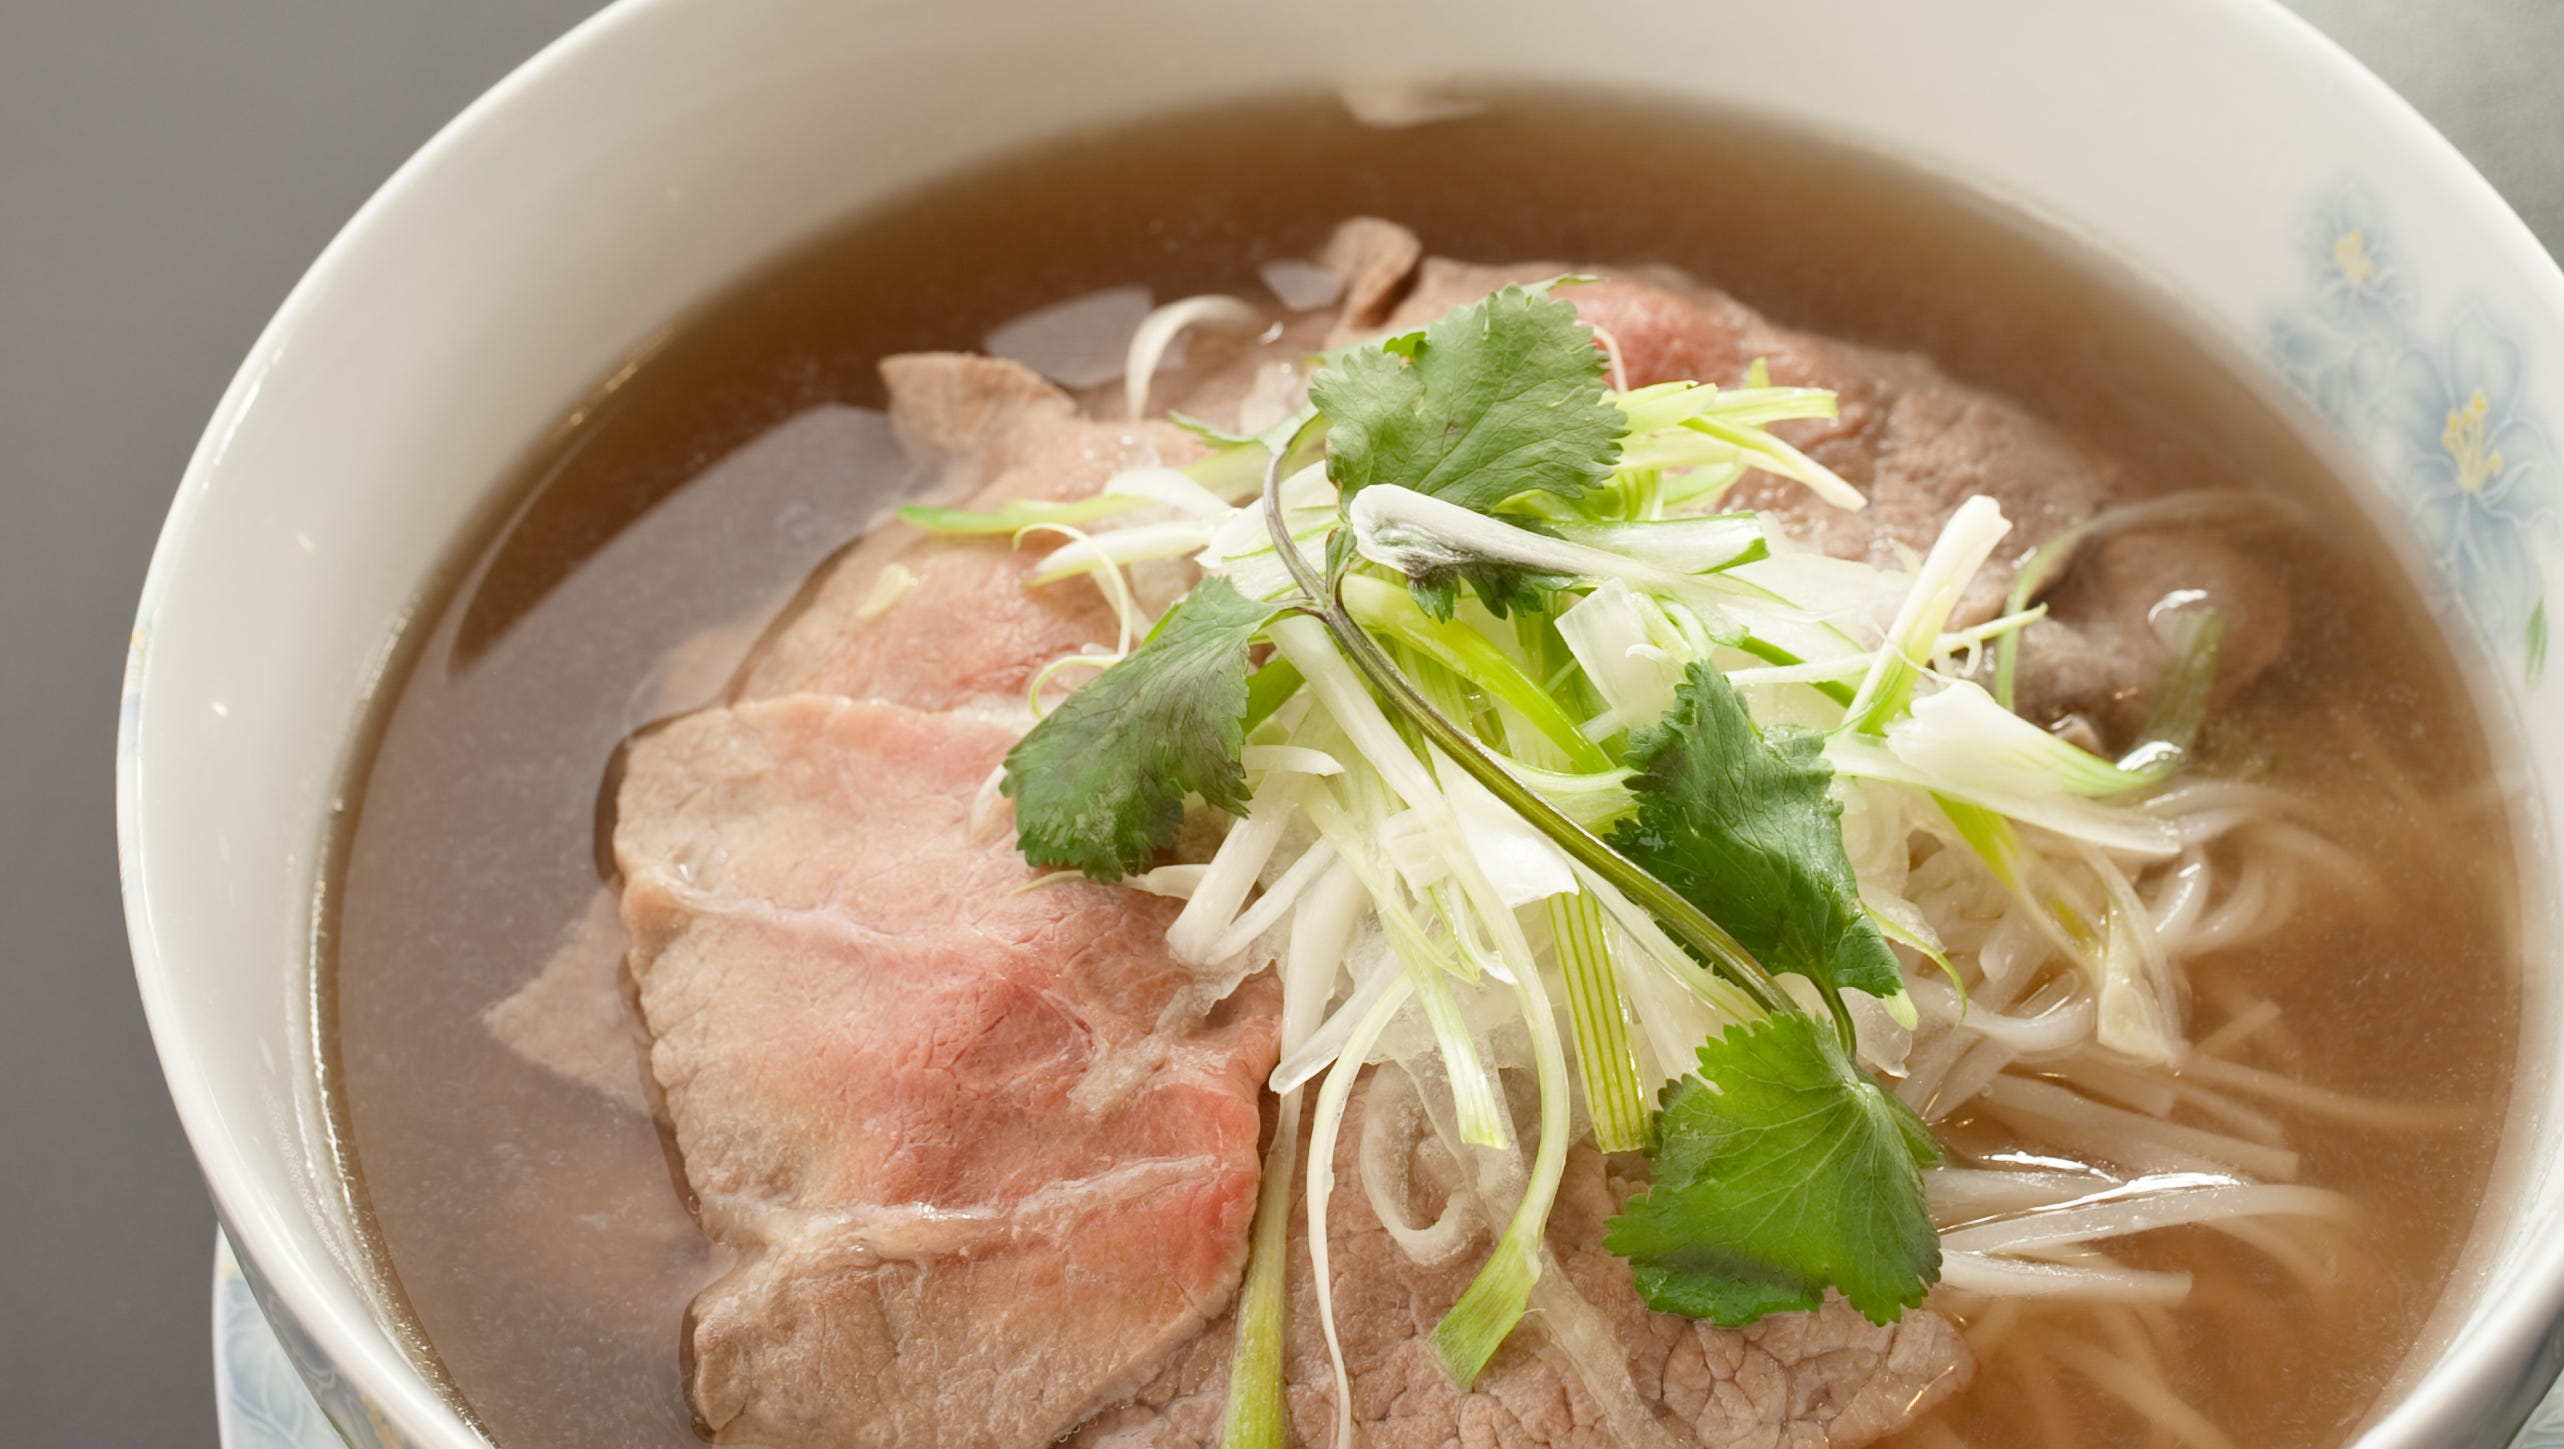 20 Places To Get Your Pho Fix In Metro Phoenix